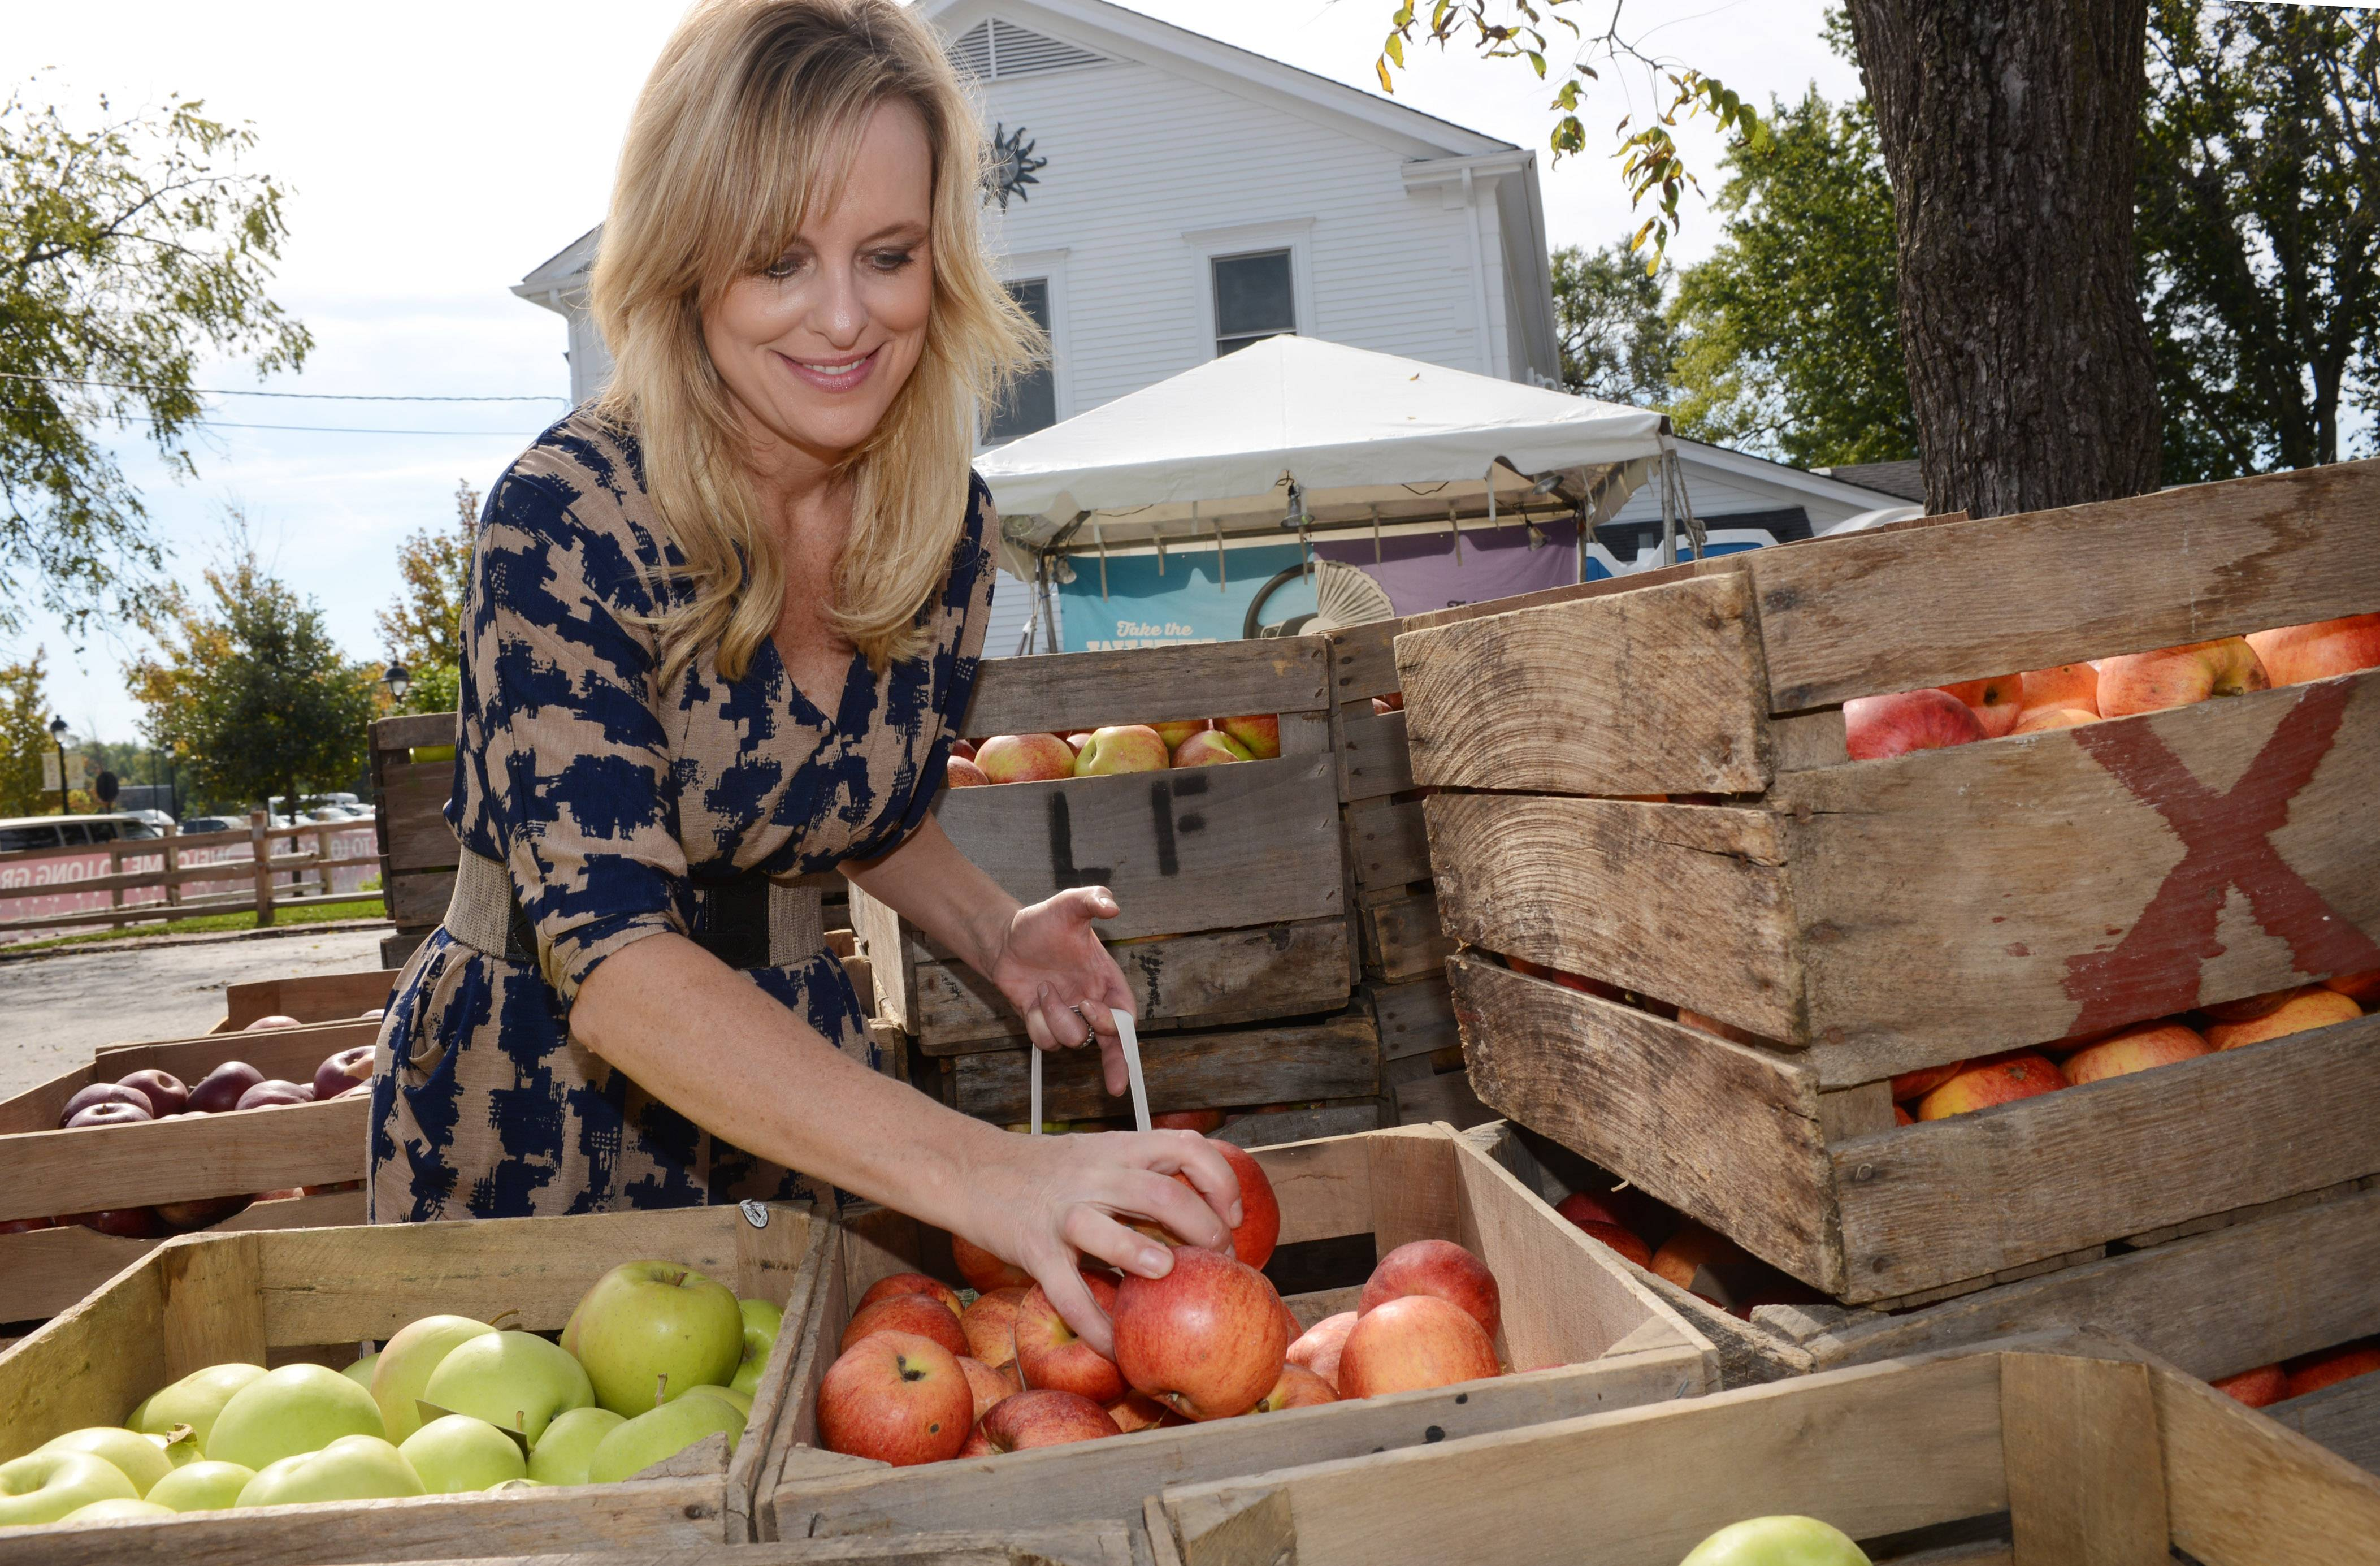 Melissa Bernadette of Long Grove selects apples at the Frank Farms stand during Apple Fest in Long Grove.